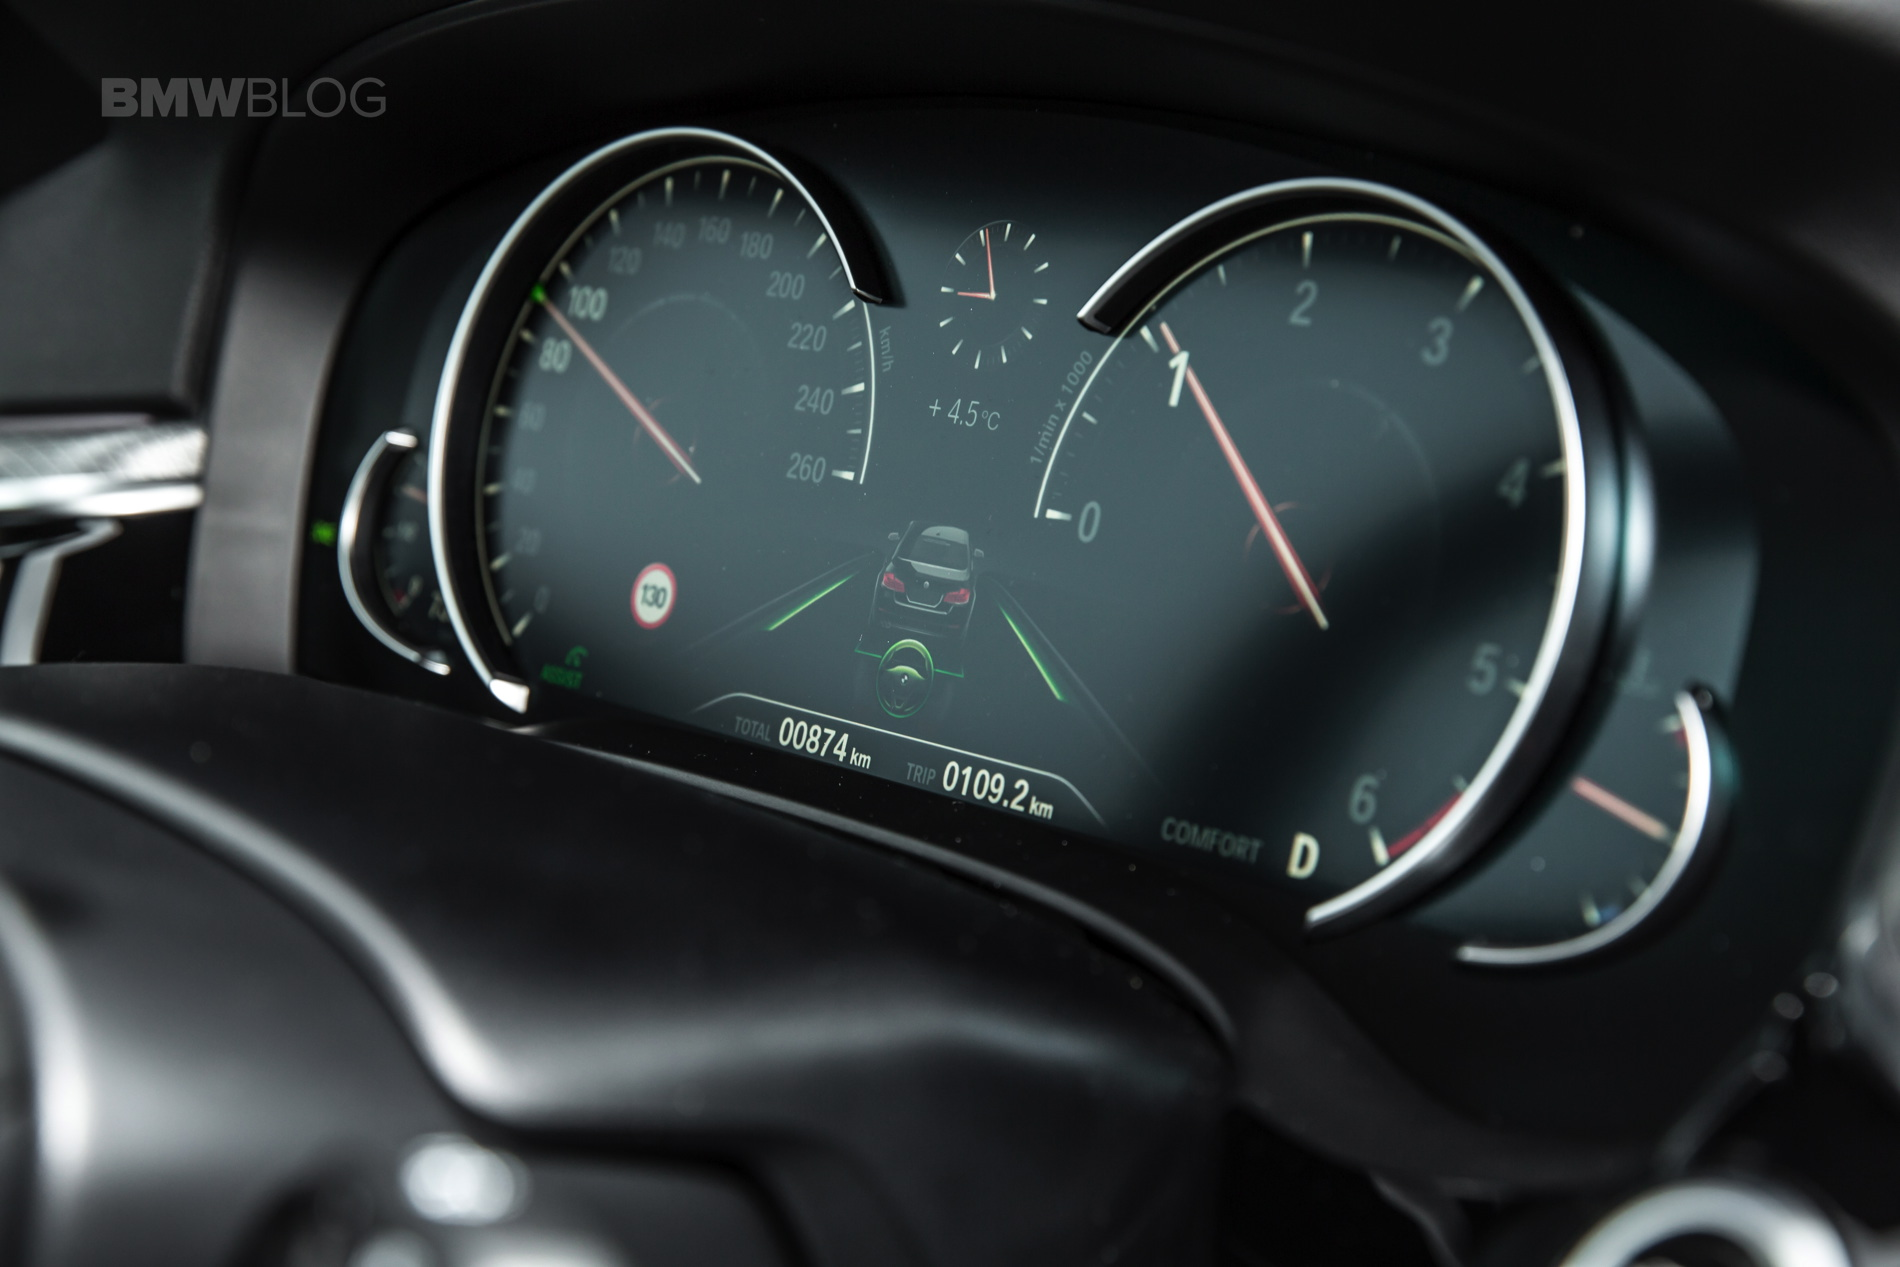 Will Bmw Switch To Fully Digital Gauge Clusters Soon